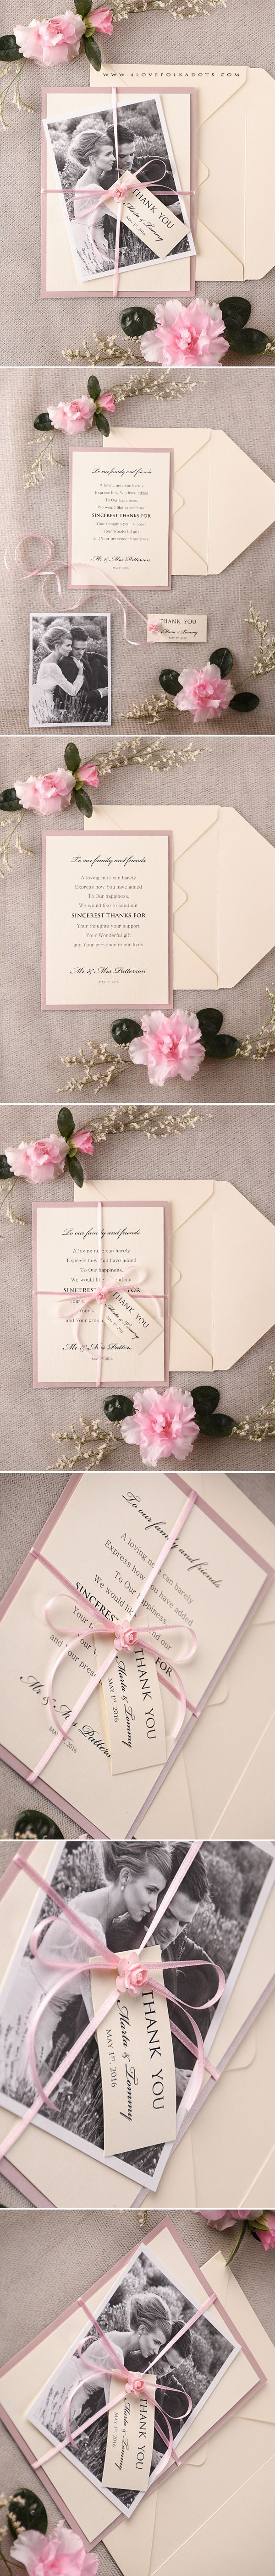 wallpaper hd diy wedding thank you gifts for smartphone best cards invitations